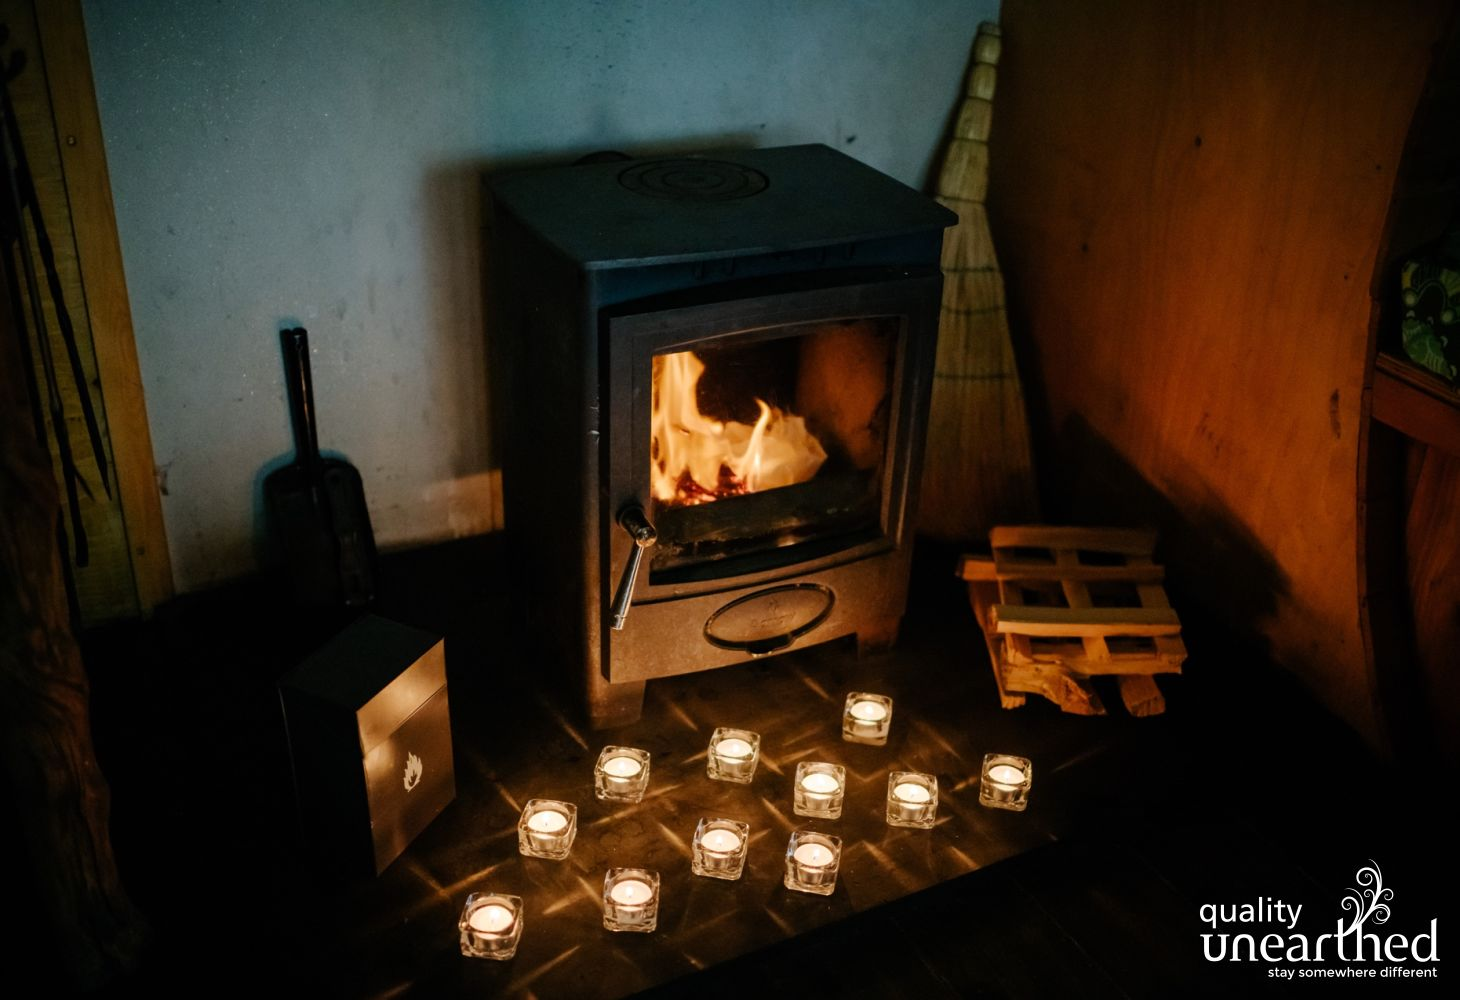 A romantic scene is created with a cosy looking wood burner. Tea lights flicker on the hearth